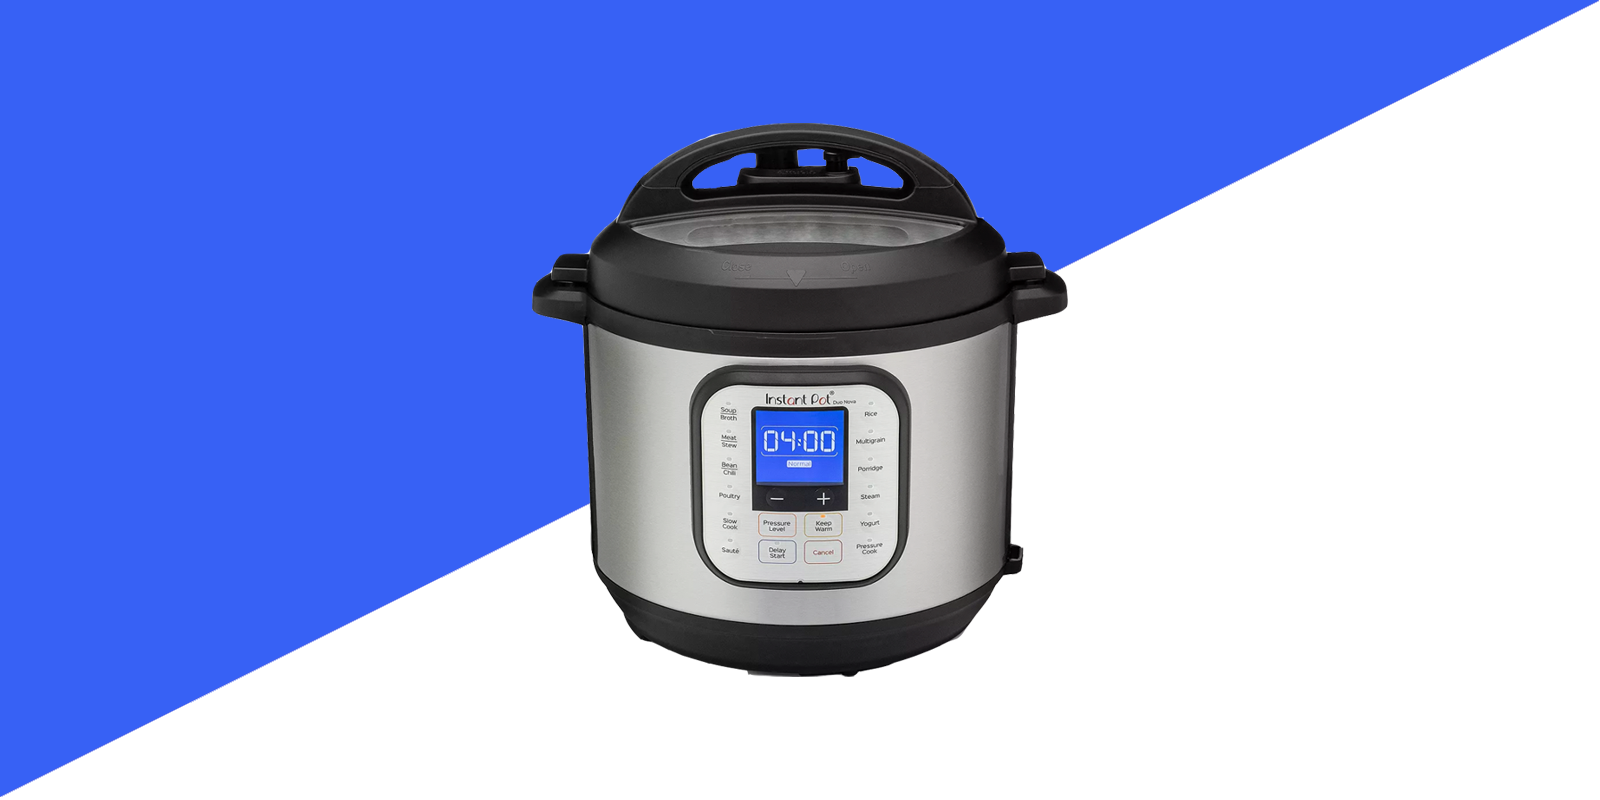 Get the latest Instant Pot for under $60